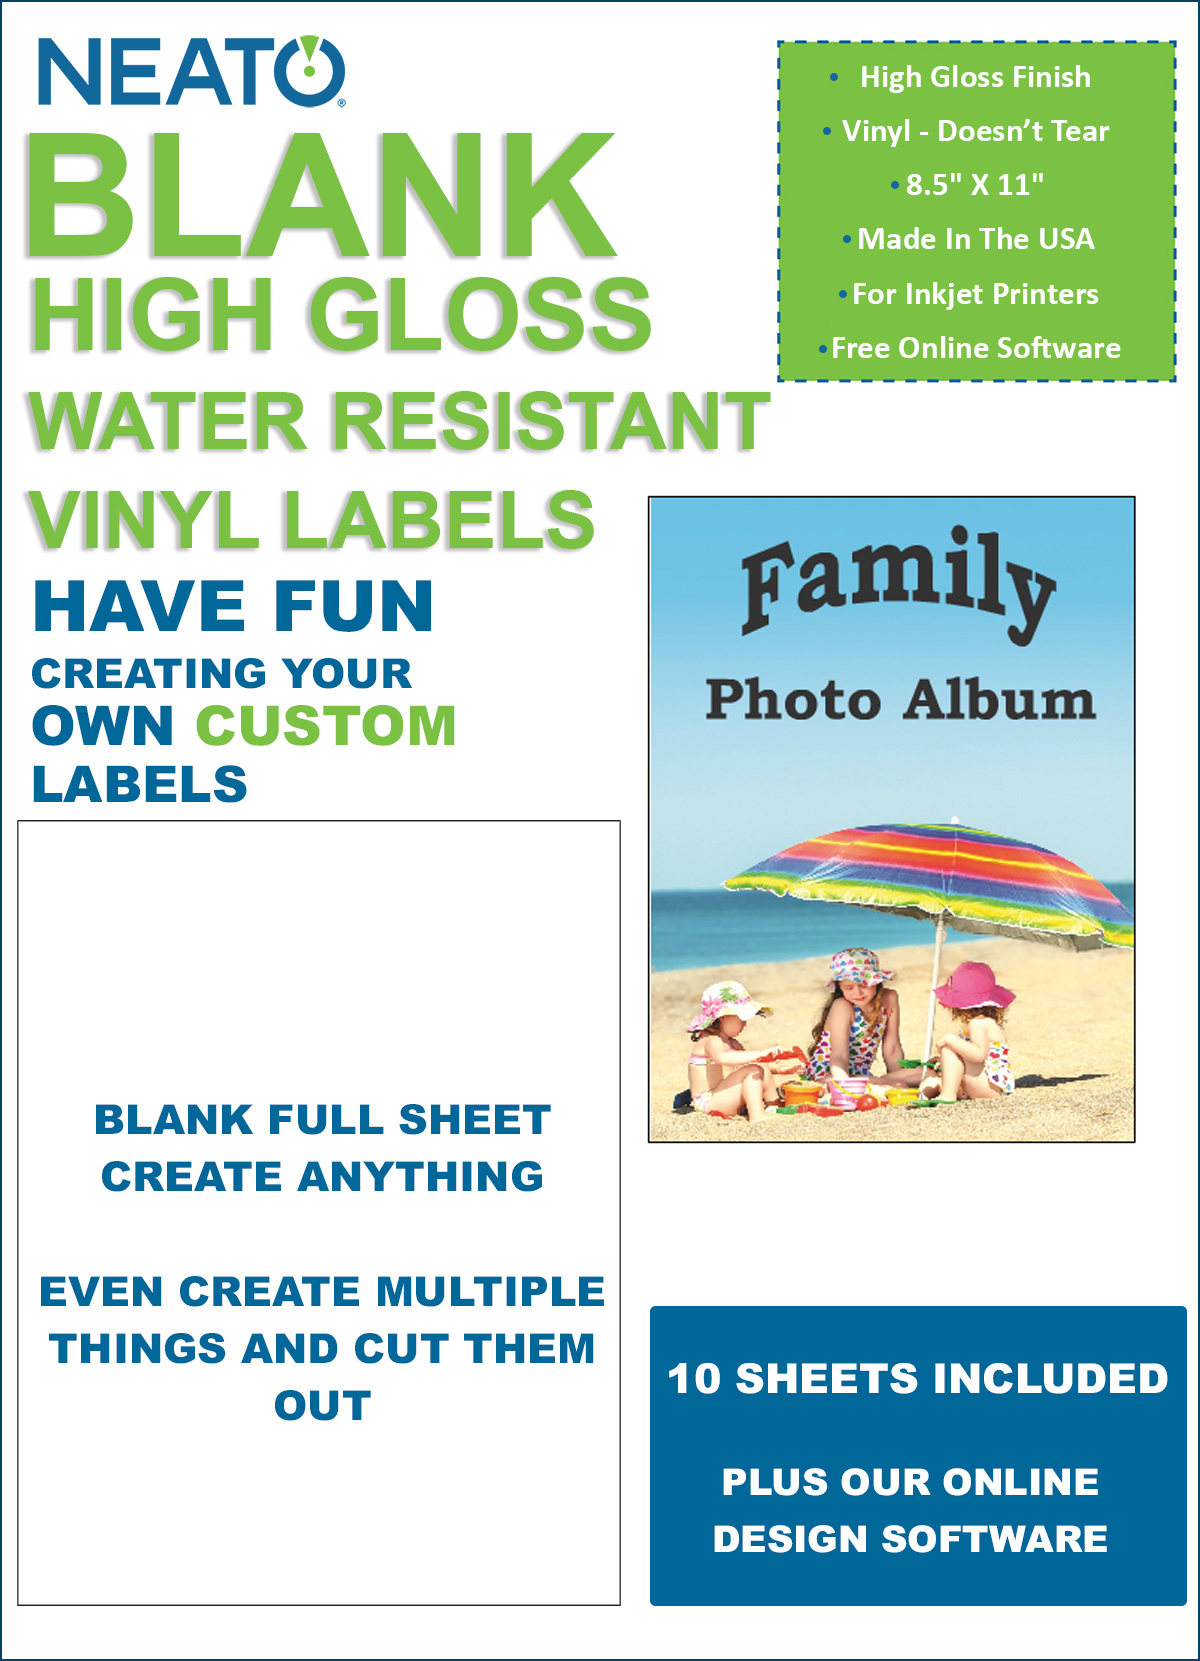 picture relating to Inkjet Printable Vinyl Walmart identify Blank Entire Sheet Labels - Higher Gloss, Vinyl, White, Drinking water Resistant, 8.5\